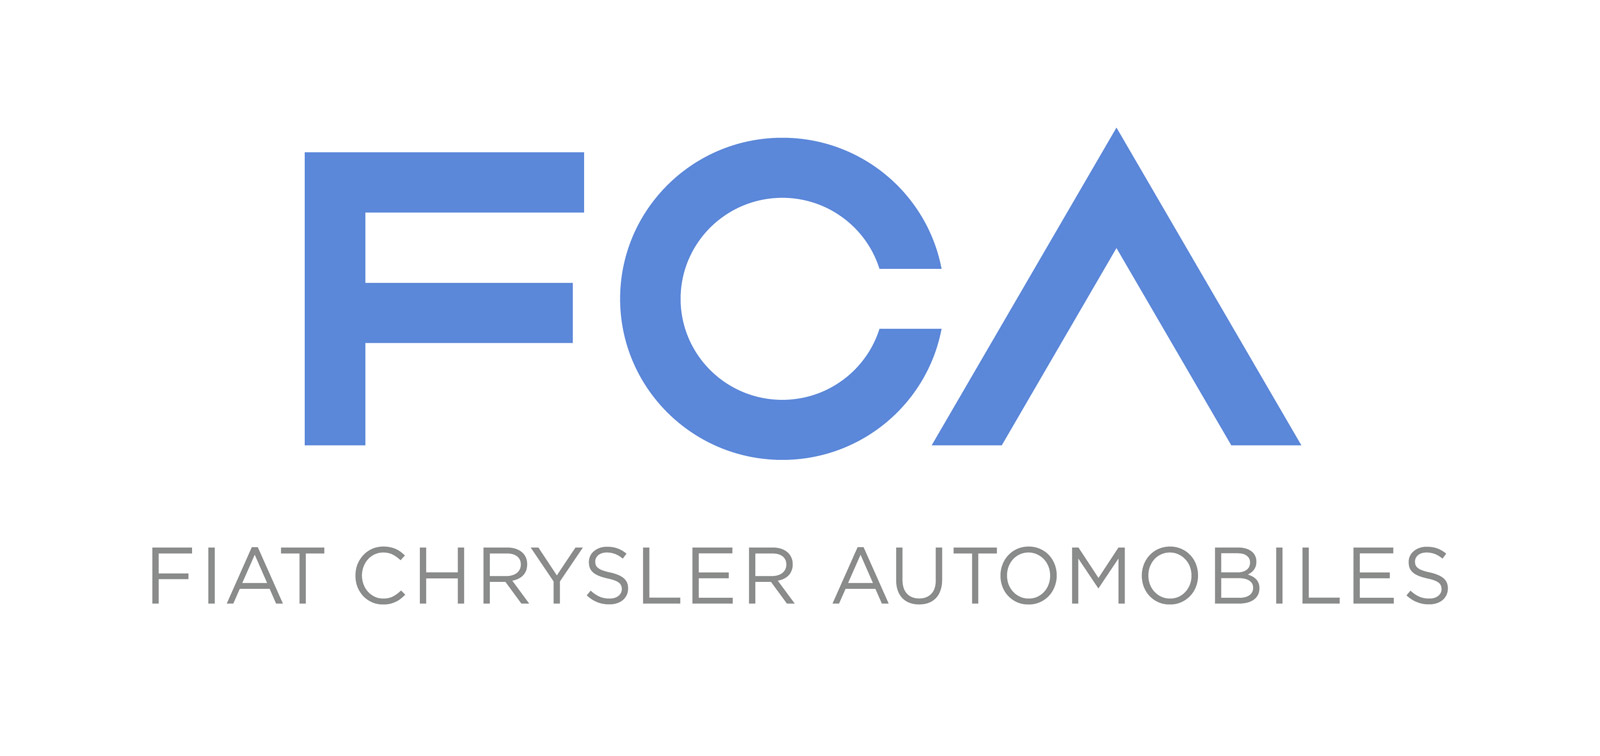 Report: Federal Grand Jury probes FCA sales numbers